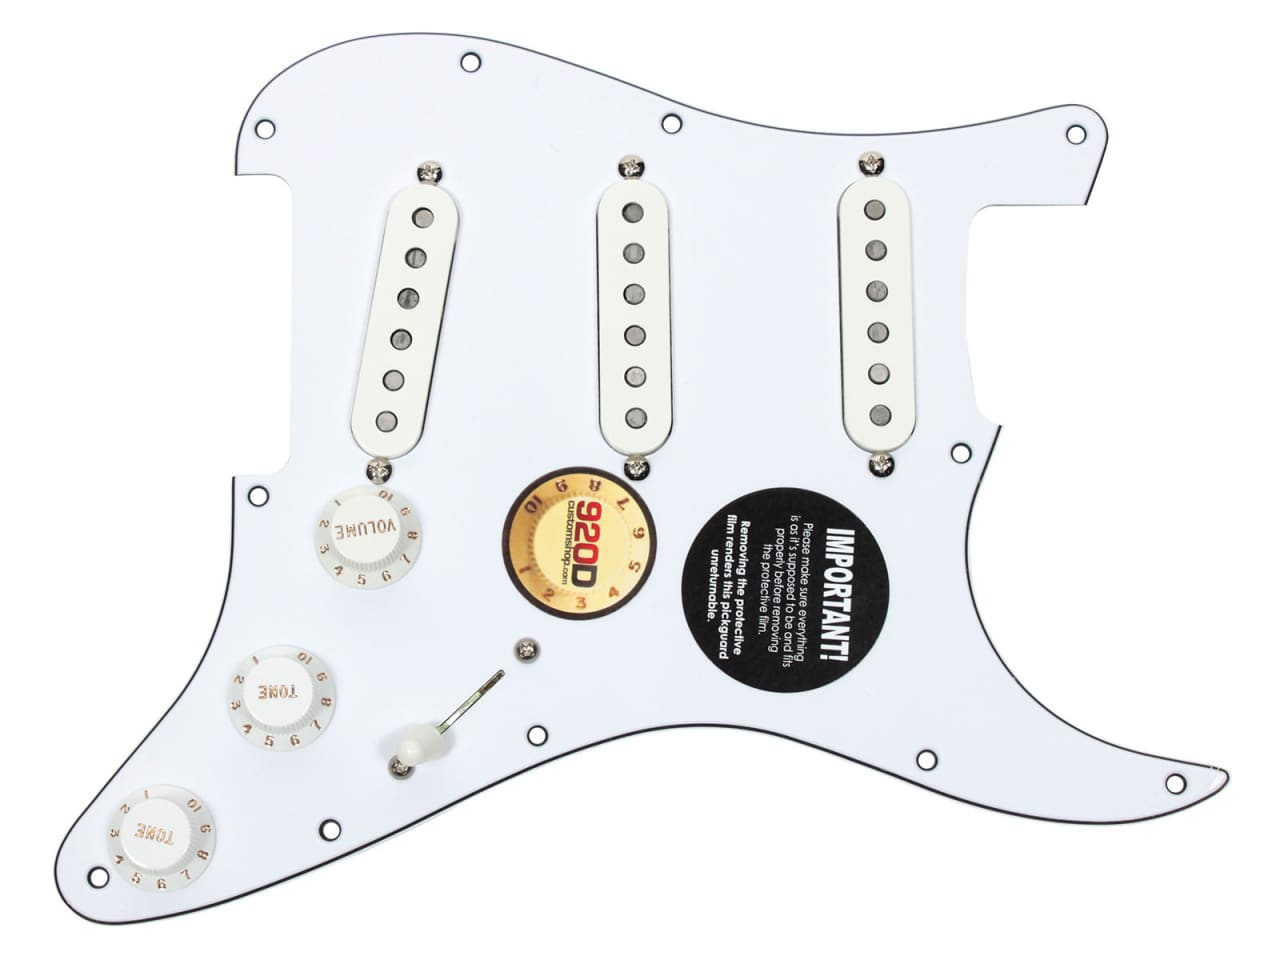 Dimarzio Area 58 Wiring Diagrams Auto Electrical Diagram 67 61 Strat Loaded Pickguard Wh